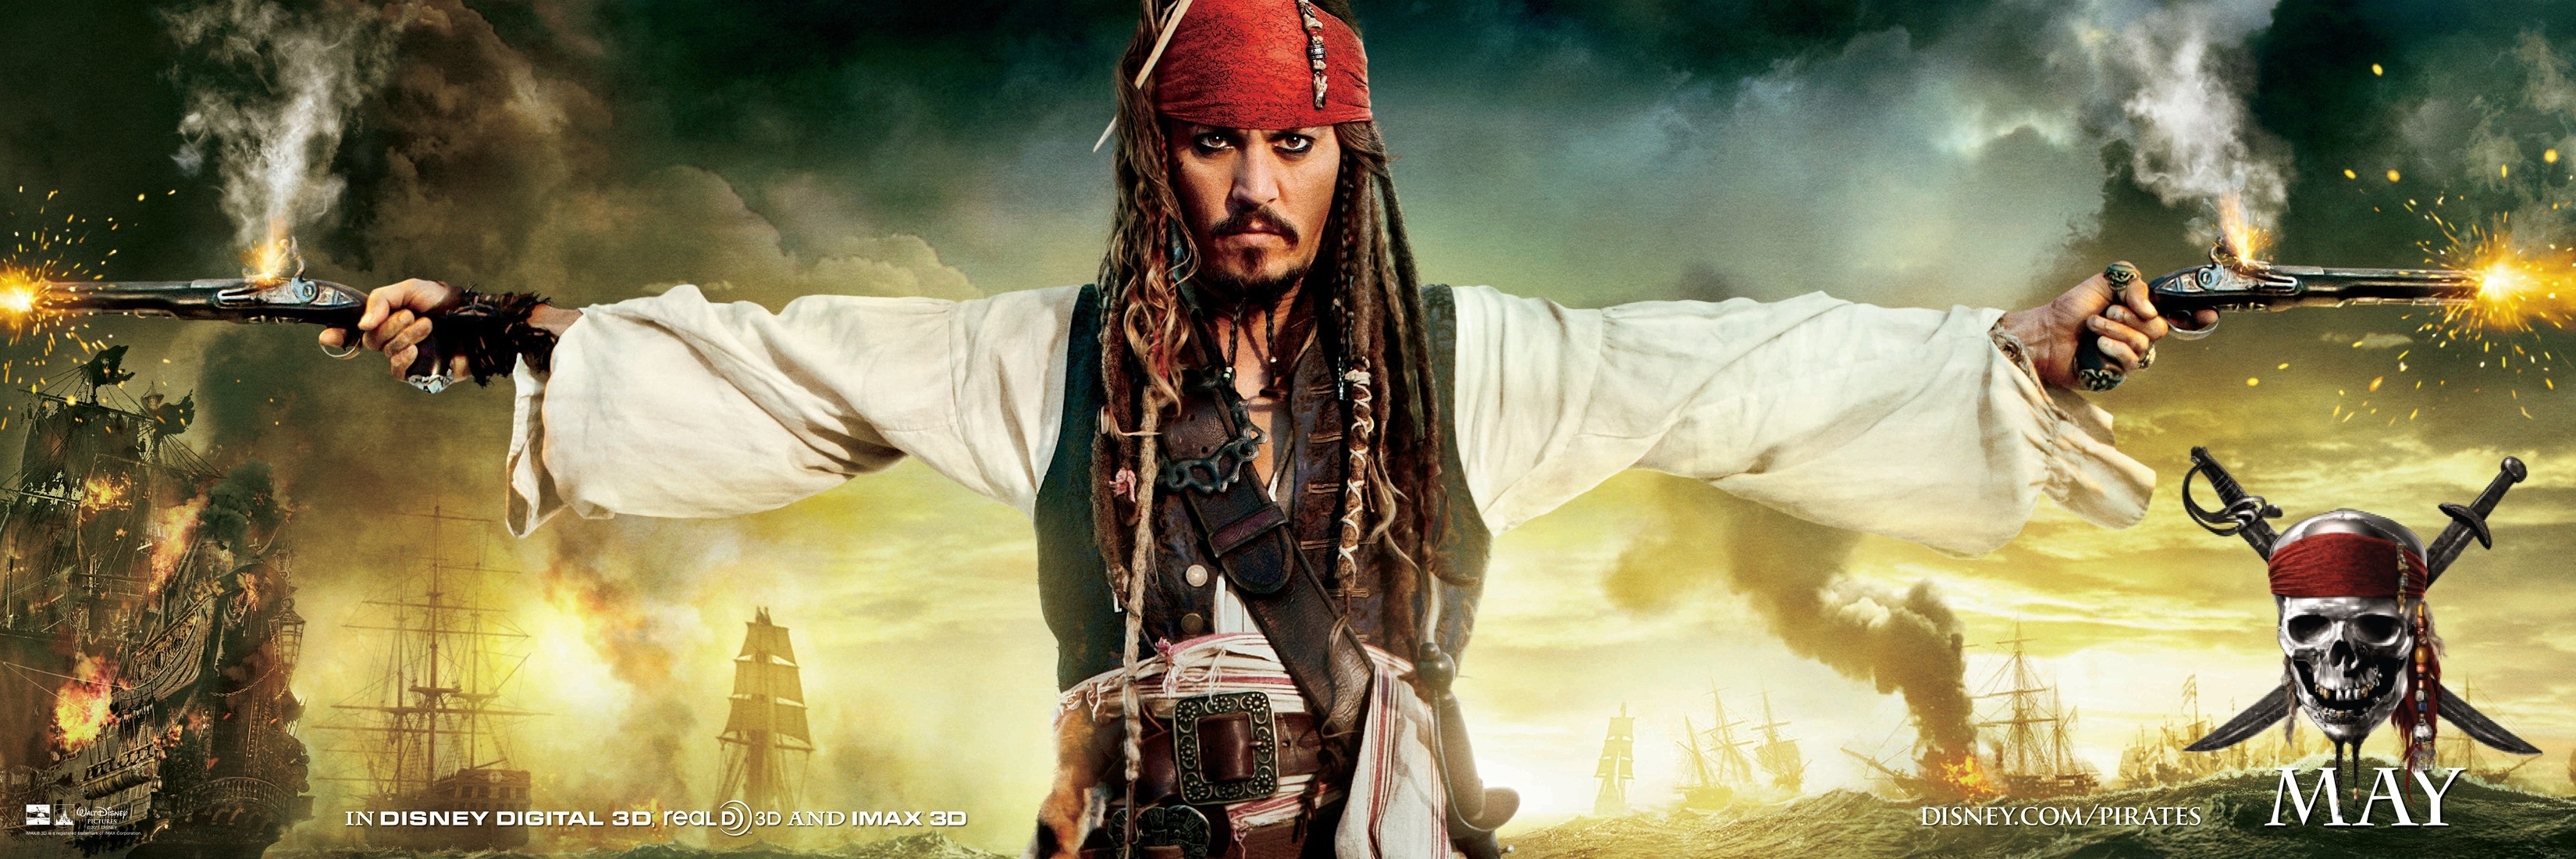 Disney Company Movies Pirates HD Wallpaper